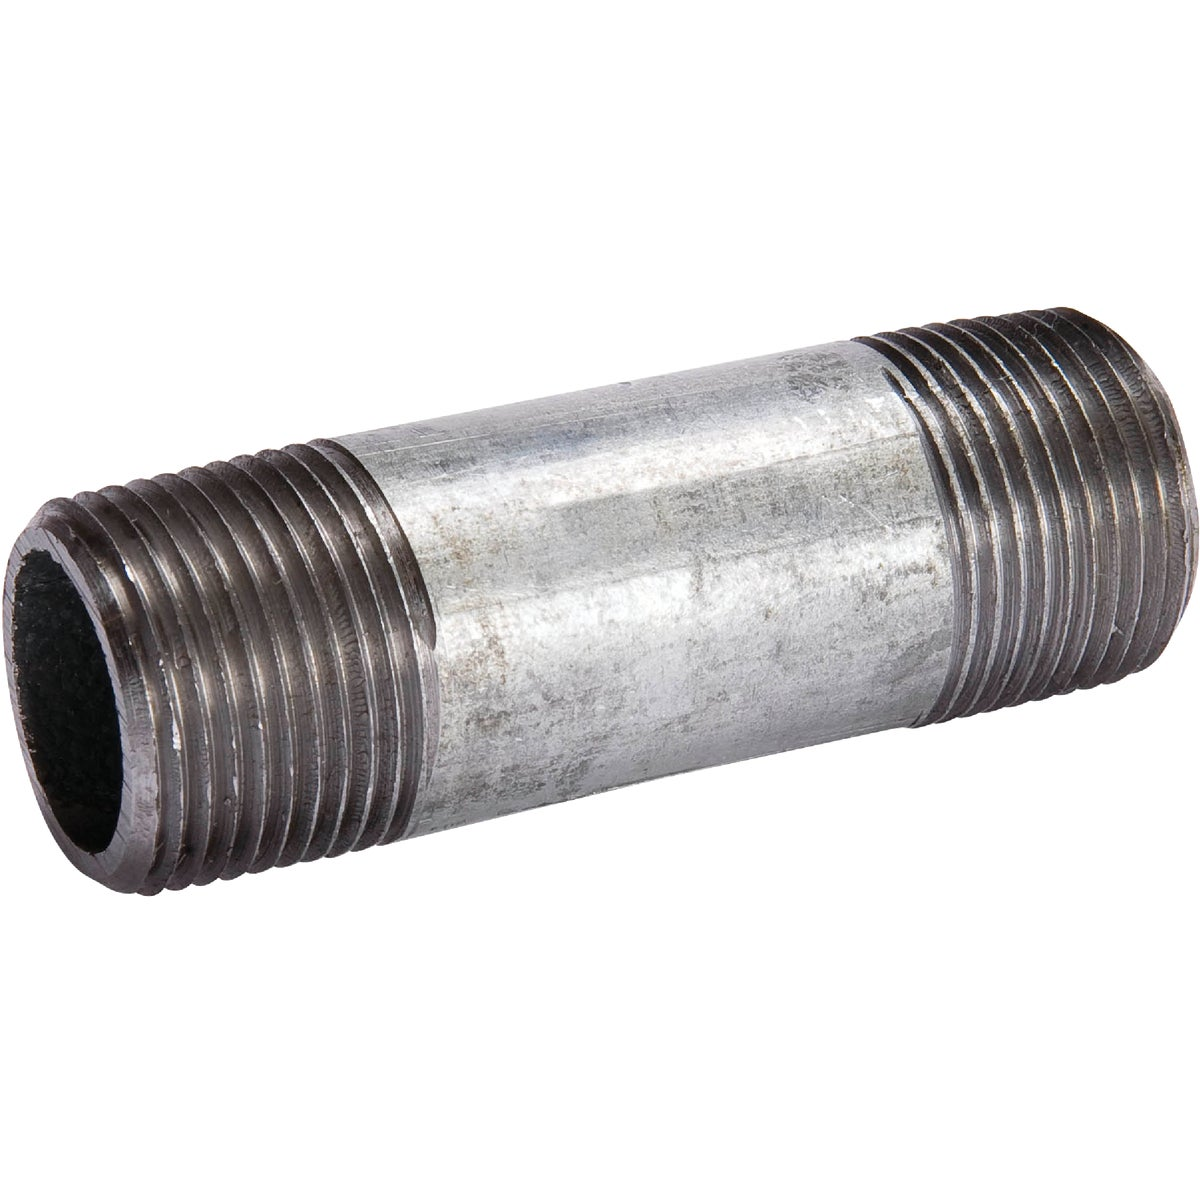 1-1/4X3-1/2 GALV NIPPLE - 10705 by Southland Pipe Nippl